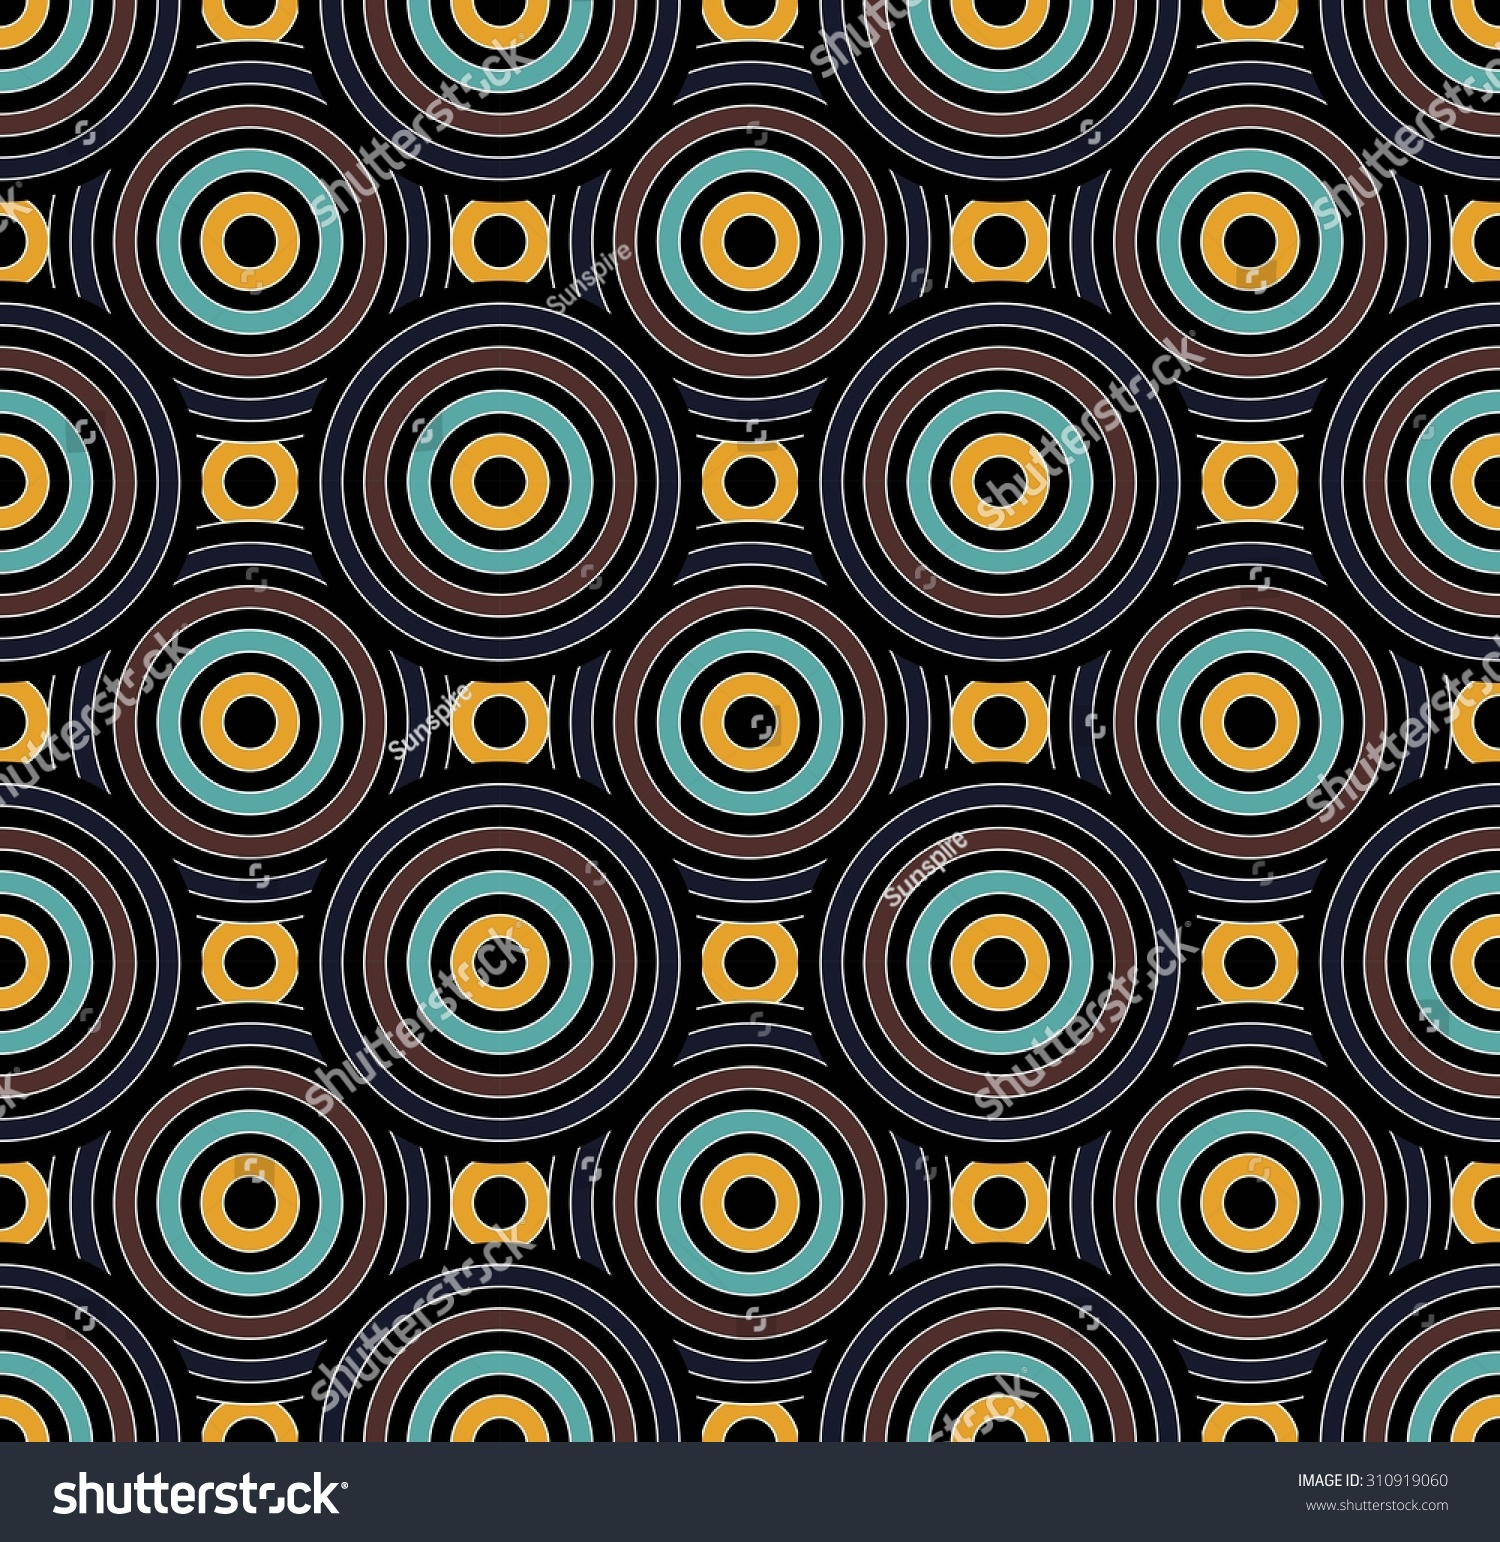 Bed sheets texture seamless - Vector Modern Seamless Pattern Circles Colorful Background Textile Print Abstract Texture Fashion